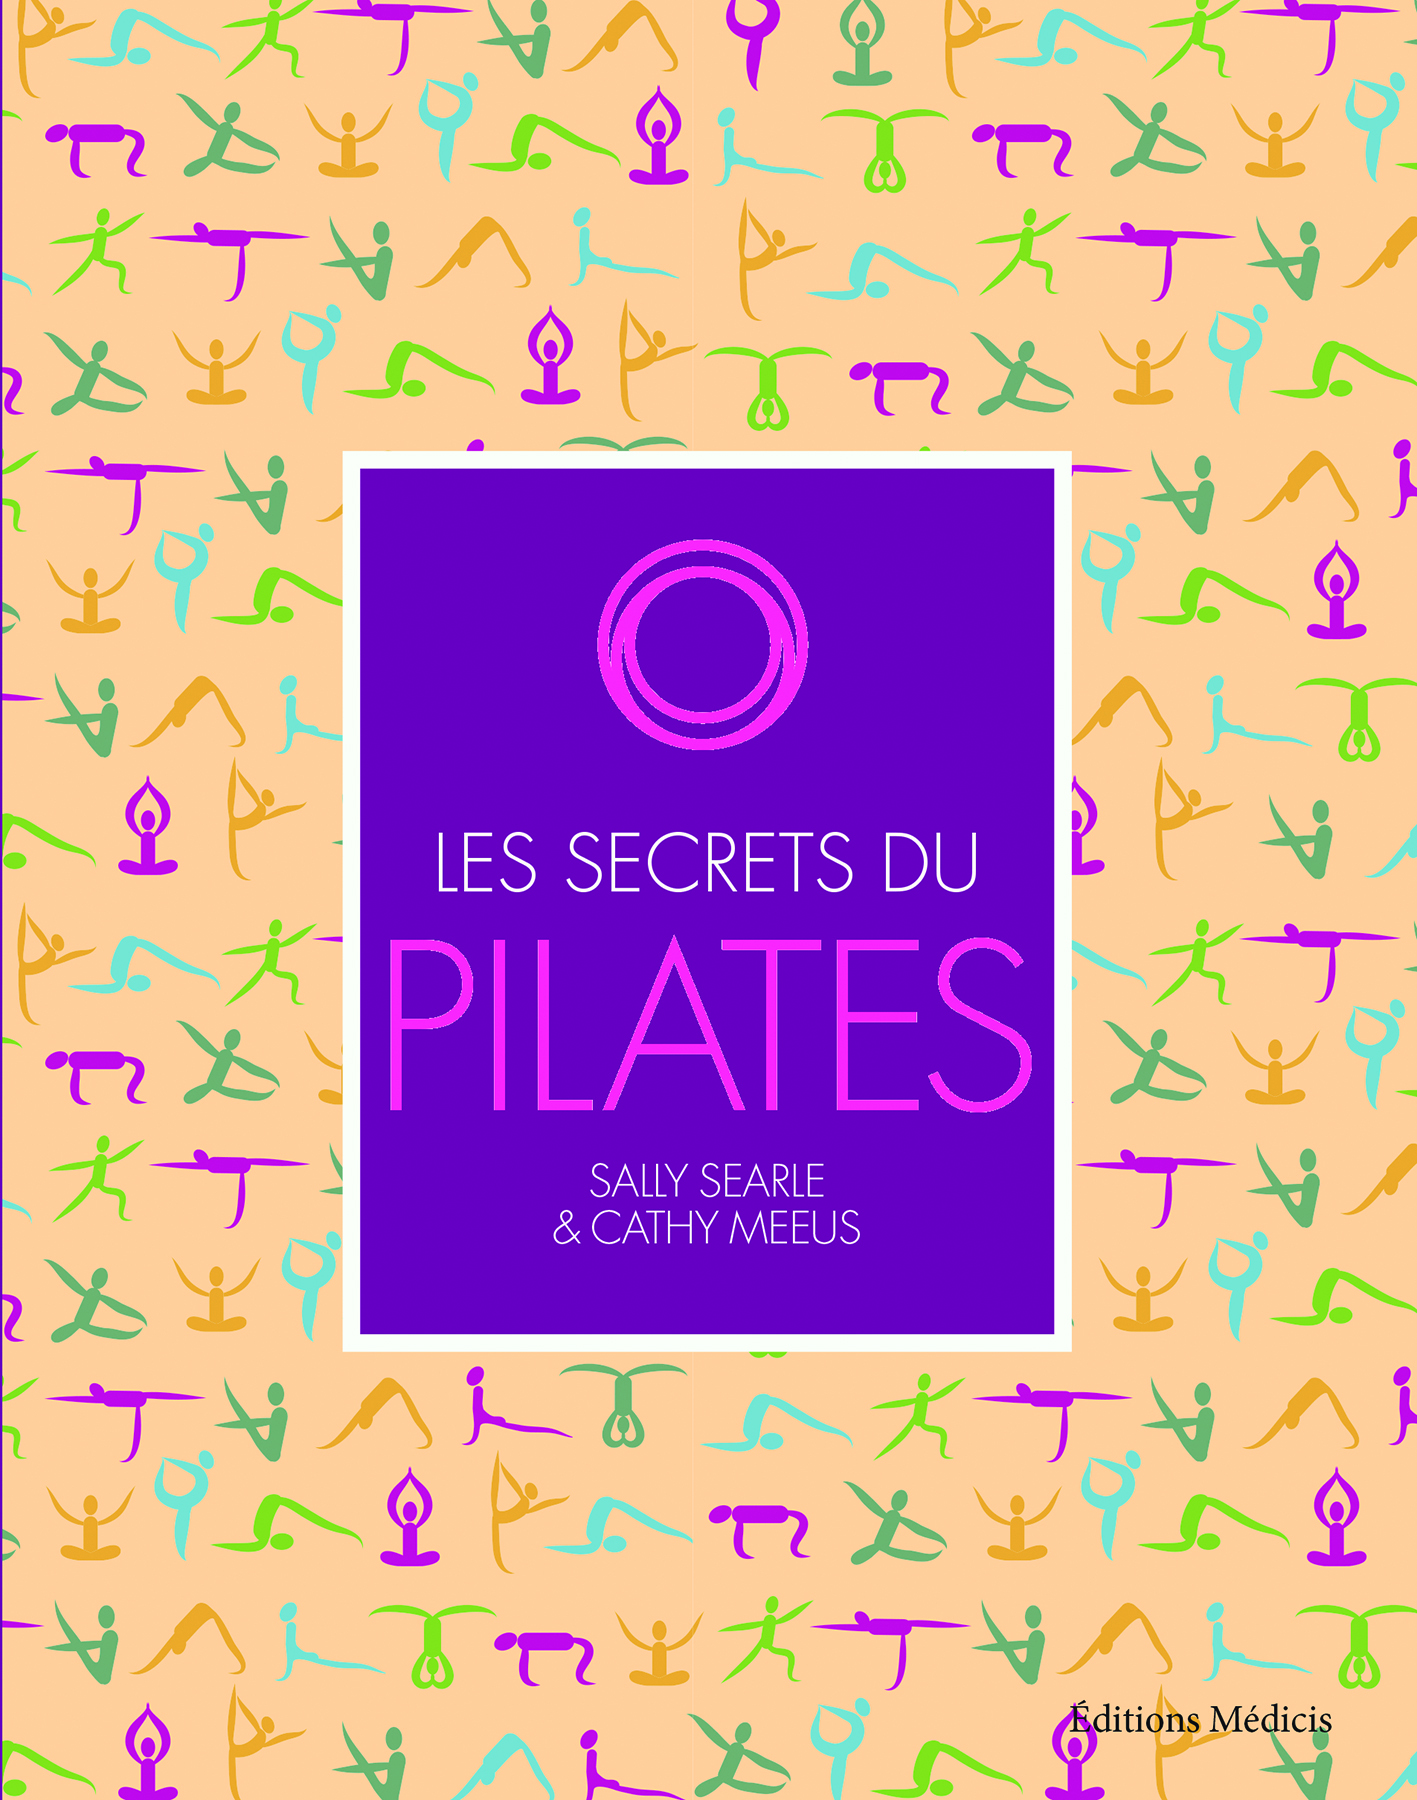 LES SECRETS DU PILATE